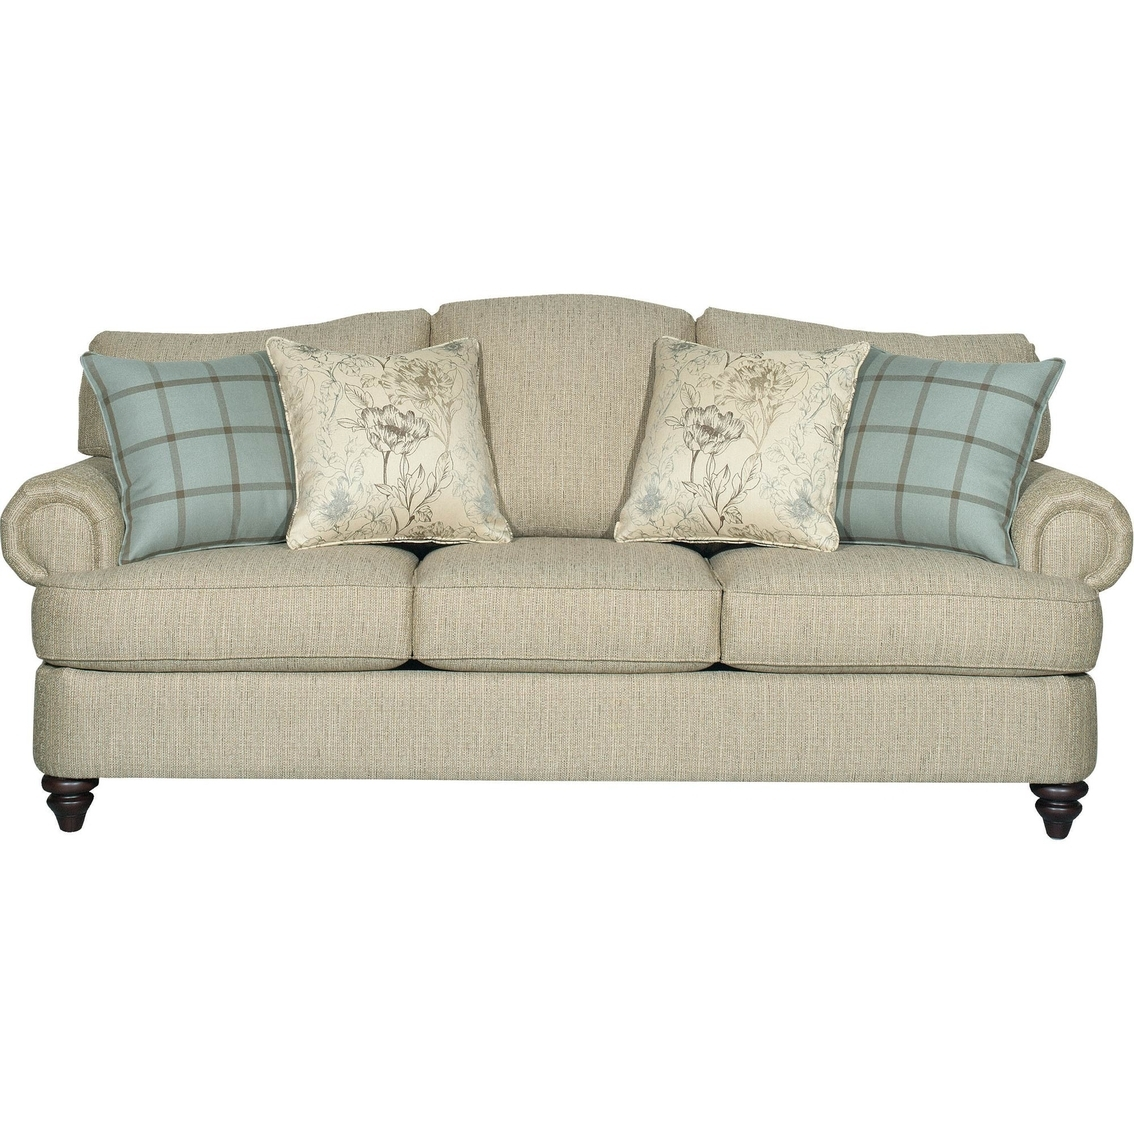 Bassett Xpress2u Barclay Sofa Sofas Couches Home Within Bassett Sofa Bed (#2 of 12)